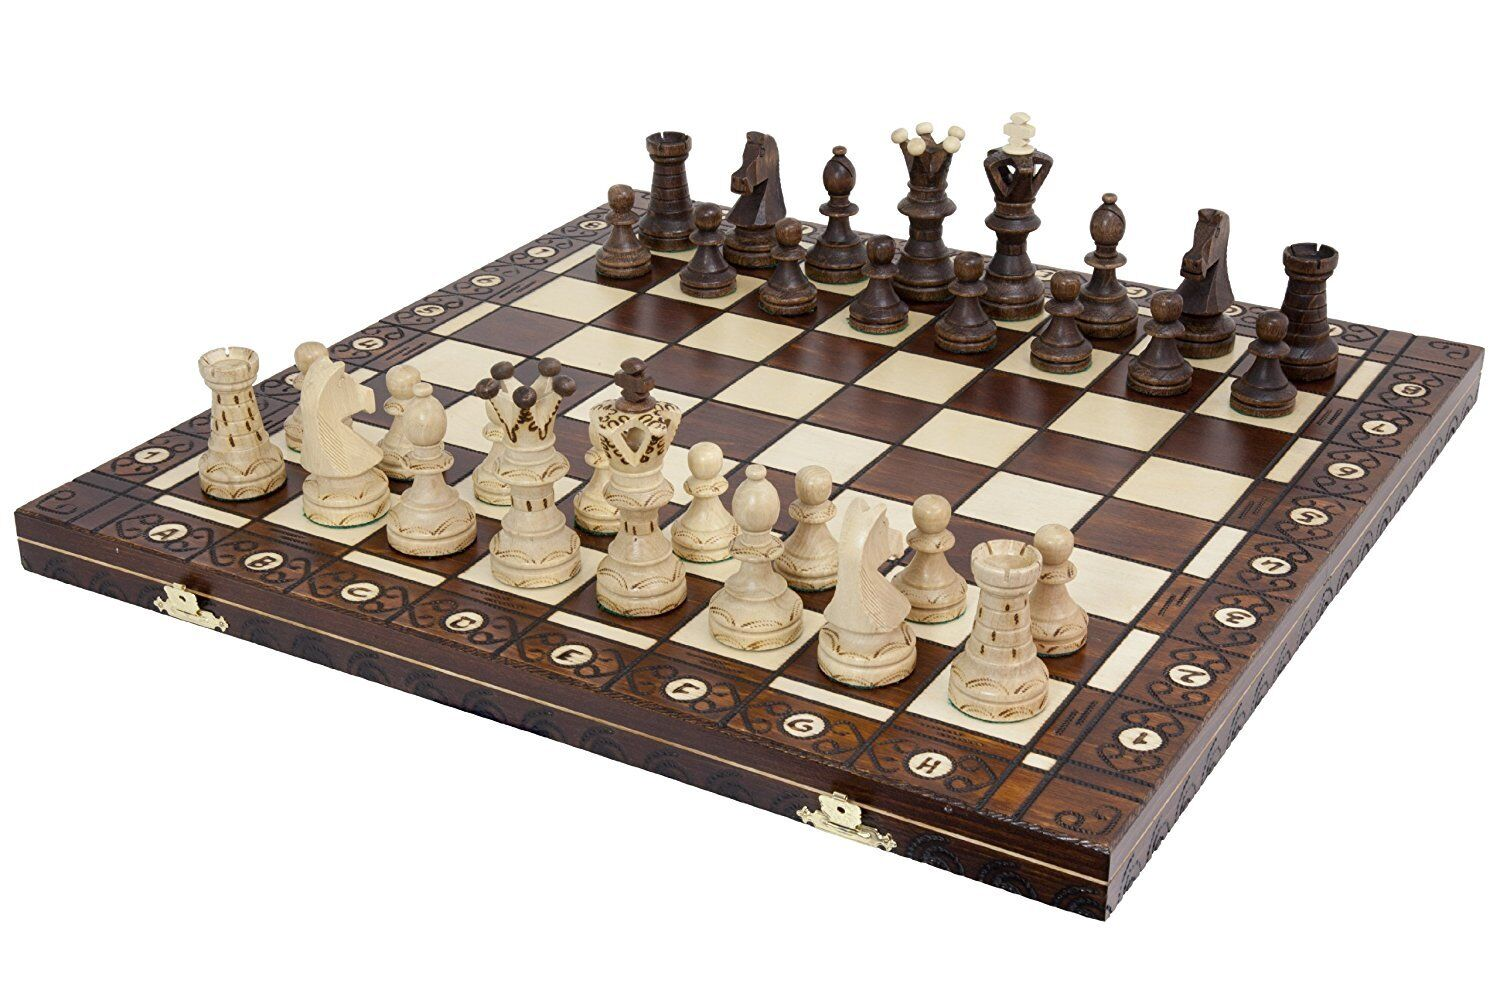 Vintage Wooden Chess Game Hand Carved Board Painted Pieces Large 21 Inch Full Se